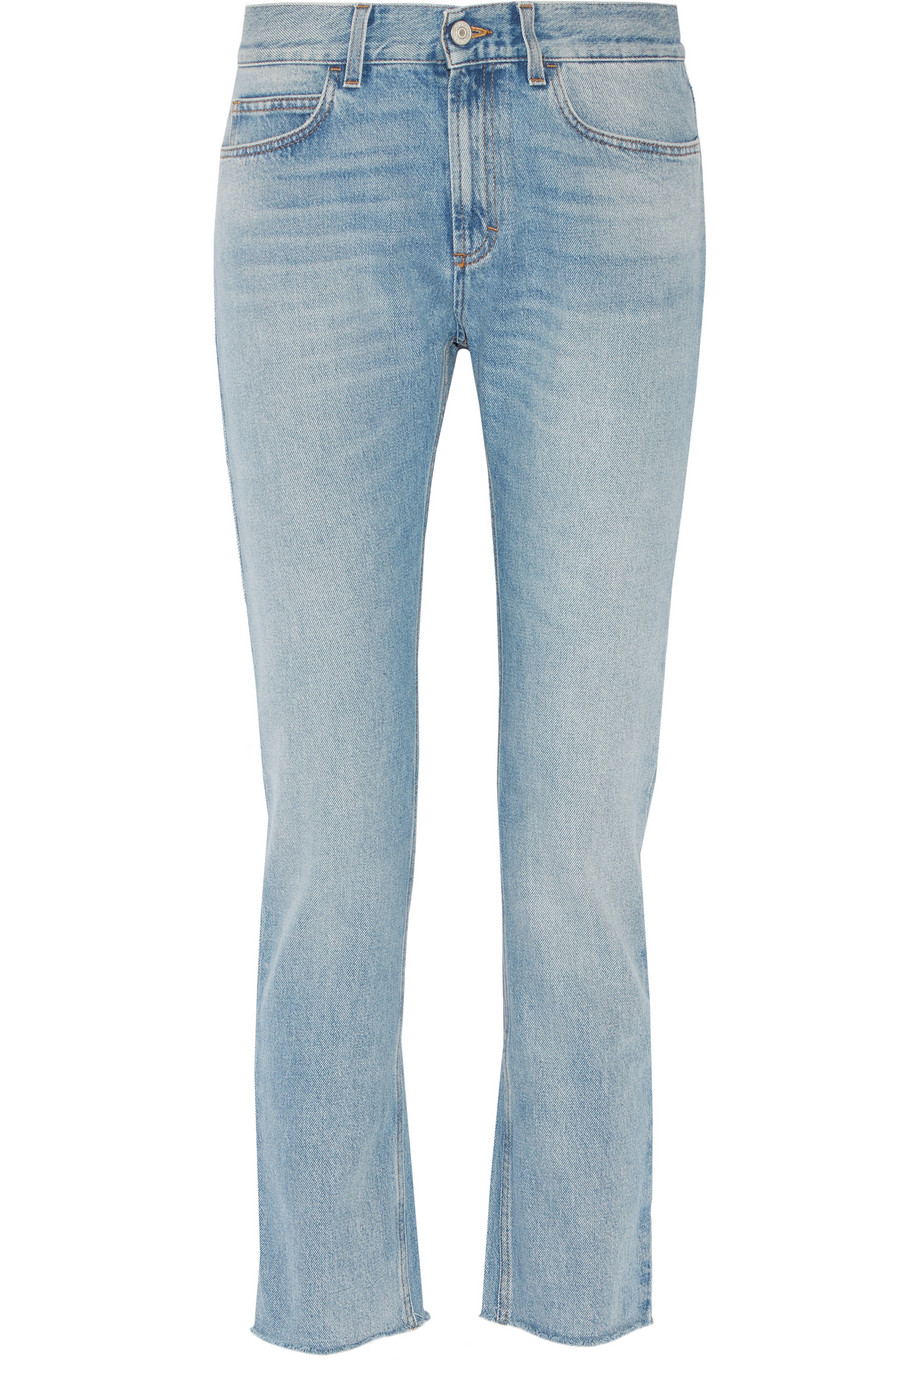 Gucci Low-Rise Bootcut Jeans, Size: 30